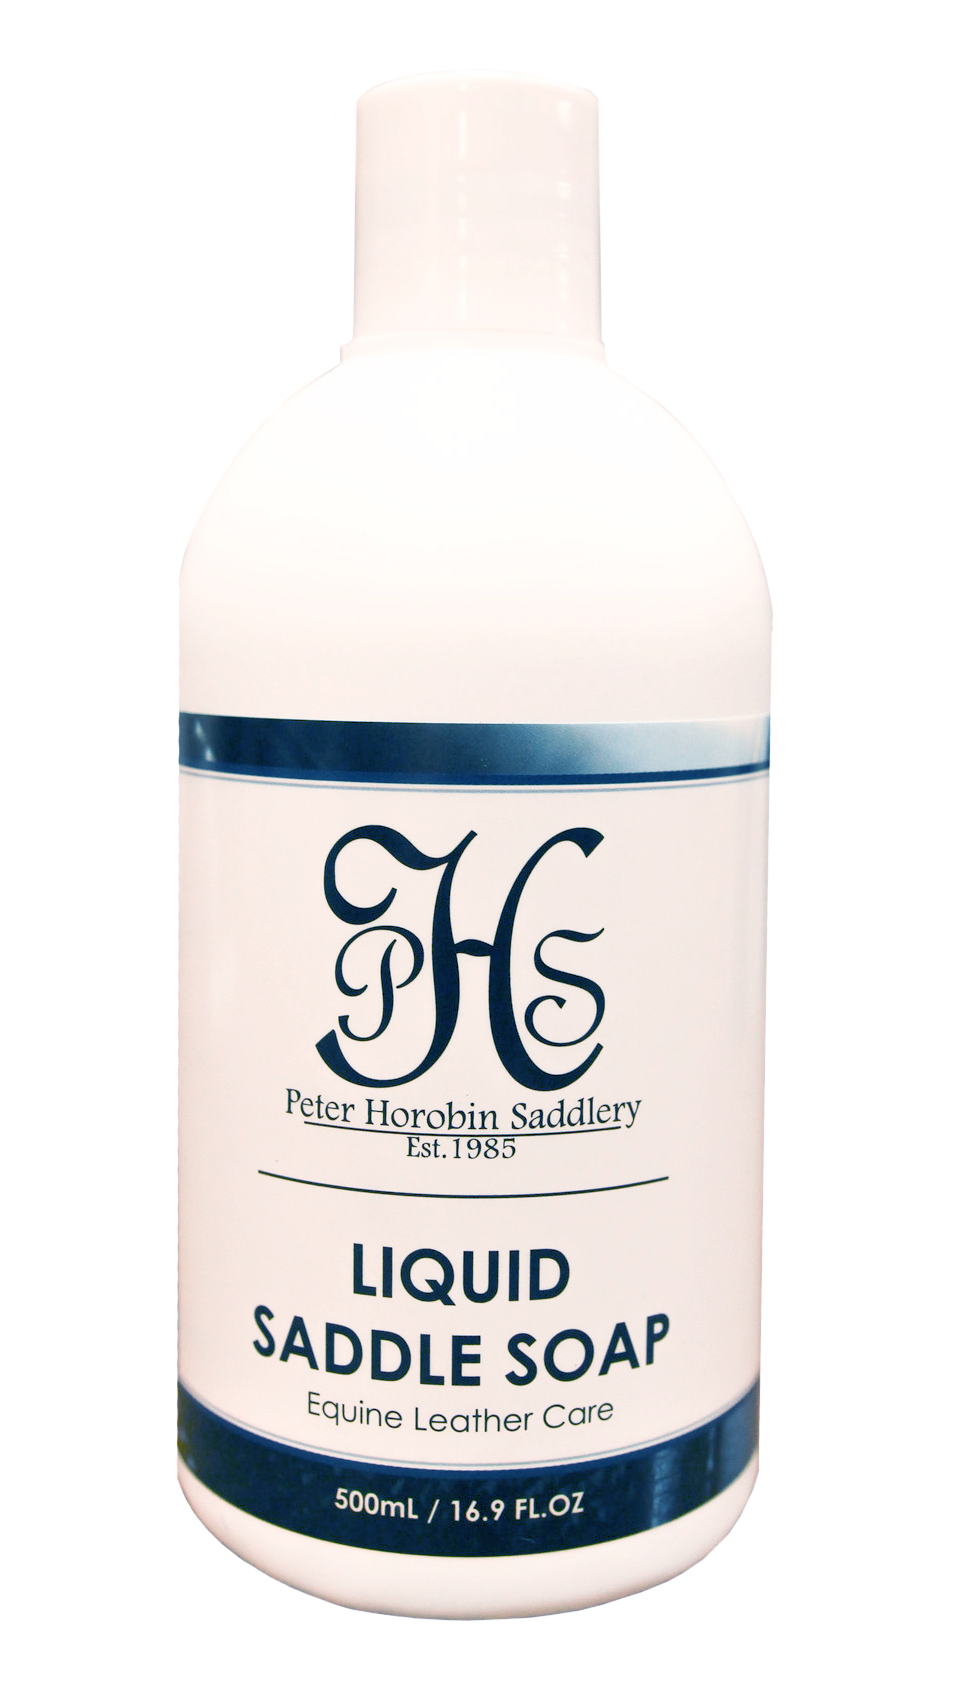 Phs Liquid Saddle Soap